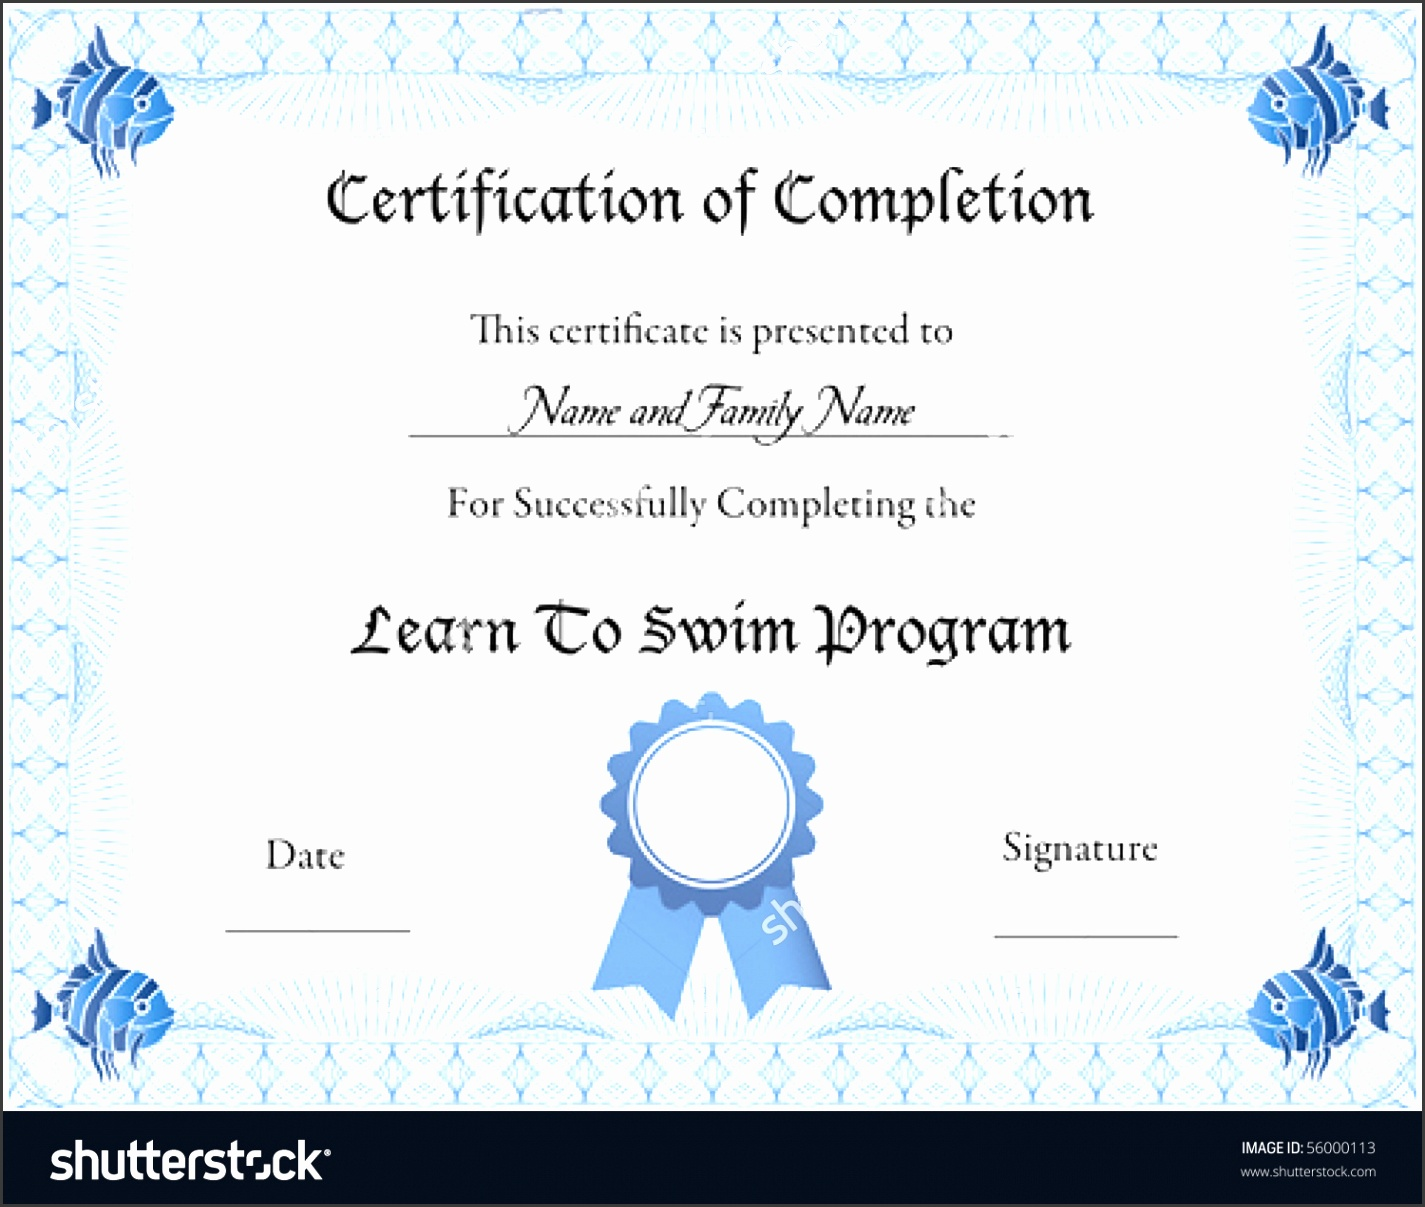 Swimming certificate templates free 4 best and various swimming certificate templates free 4 alramifo Image collections